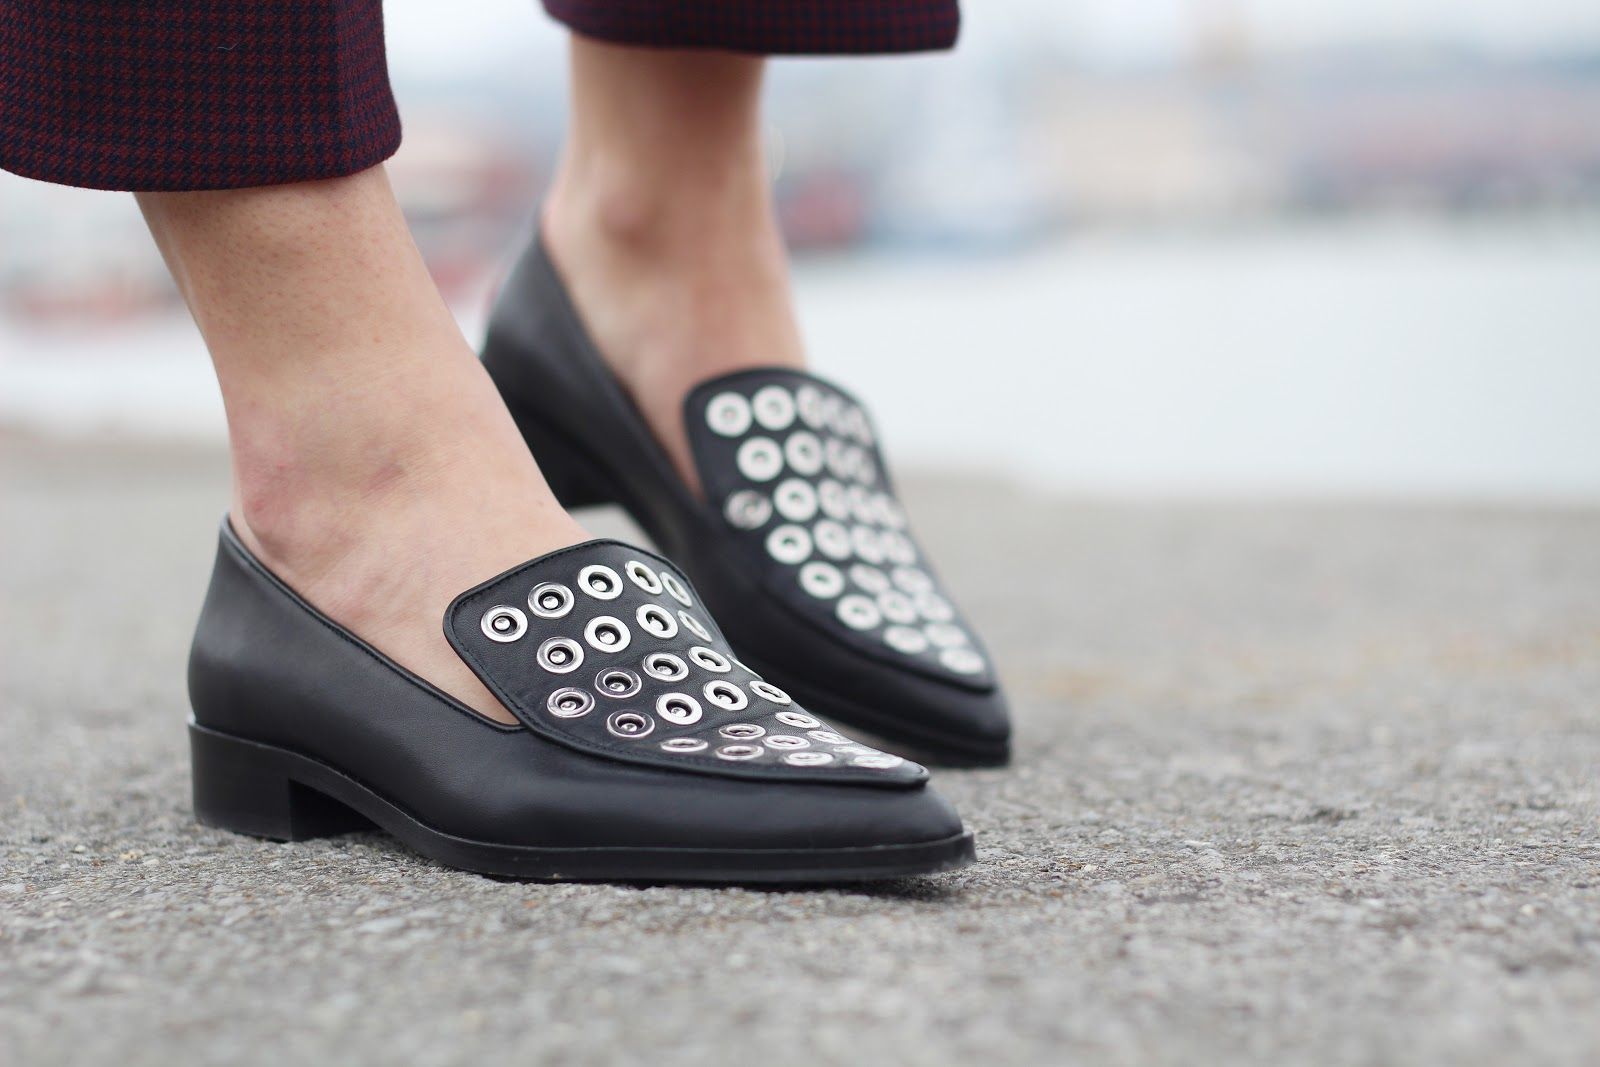 STUDDED & POINTED SHOES